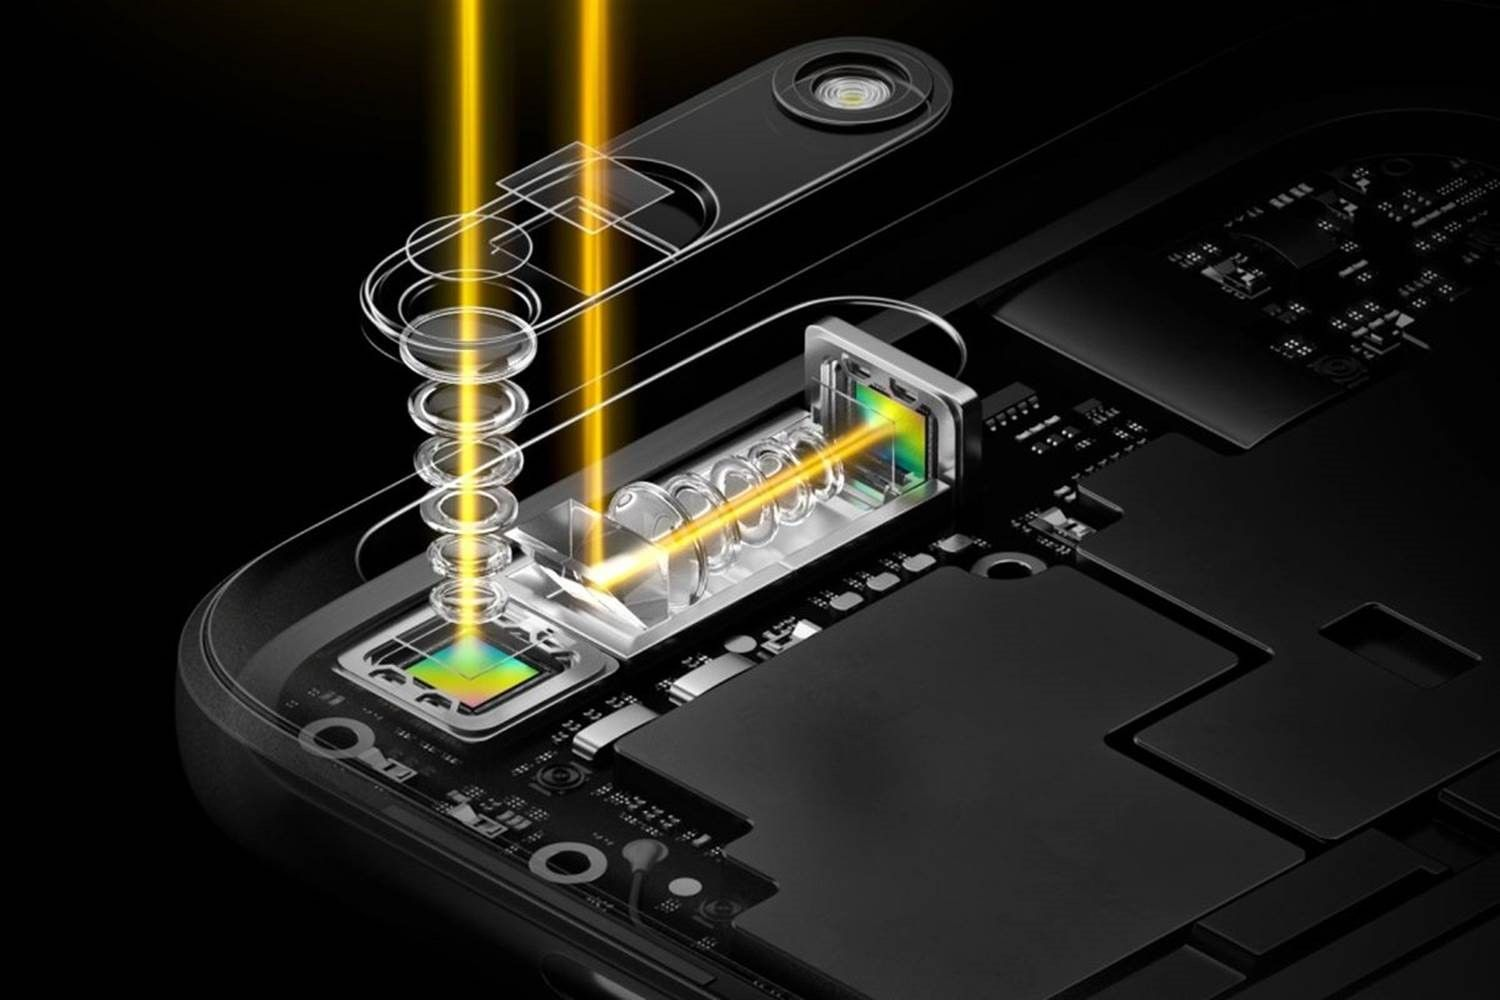 mobile-wold-congress-news-oppo-5x-optical-zoom